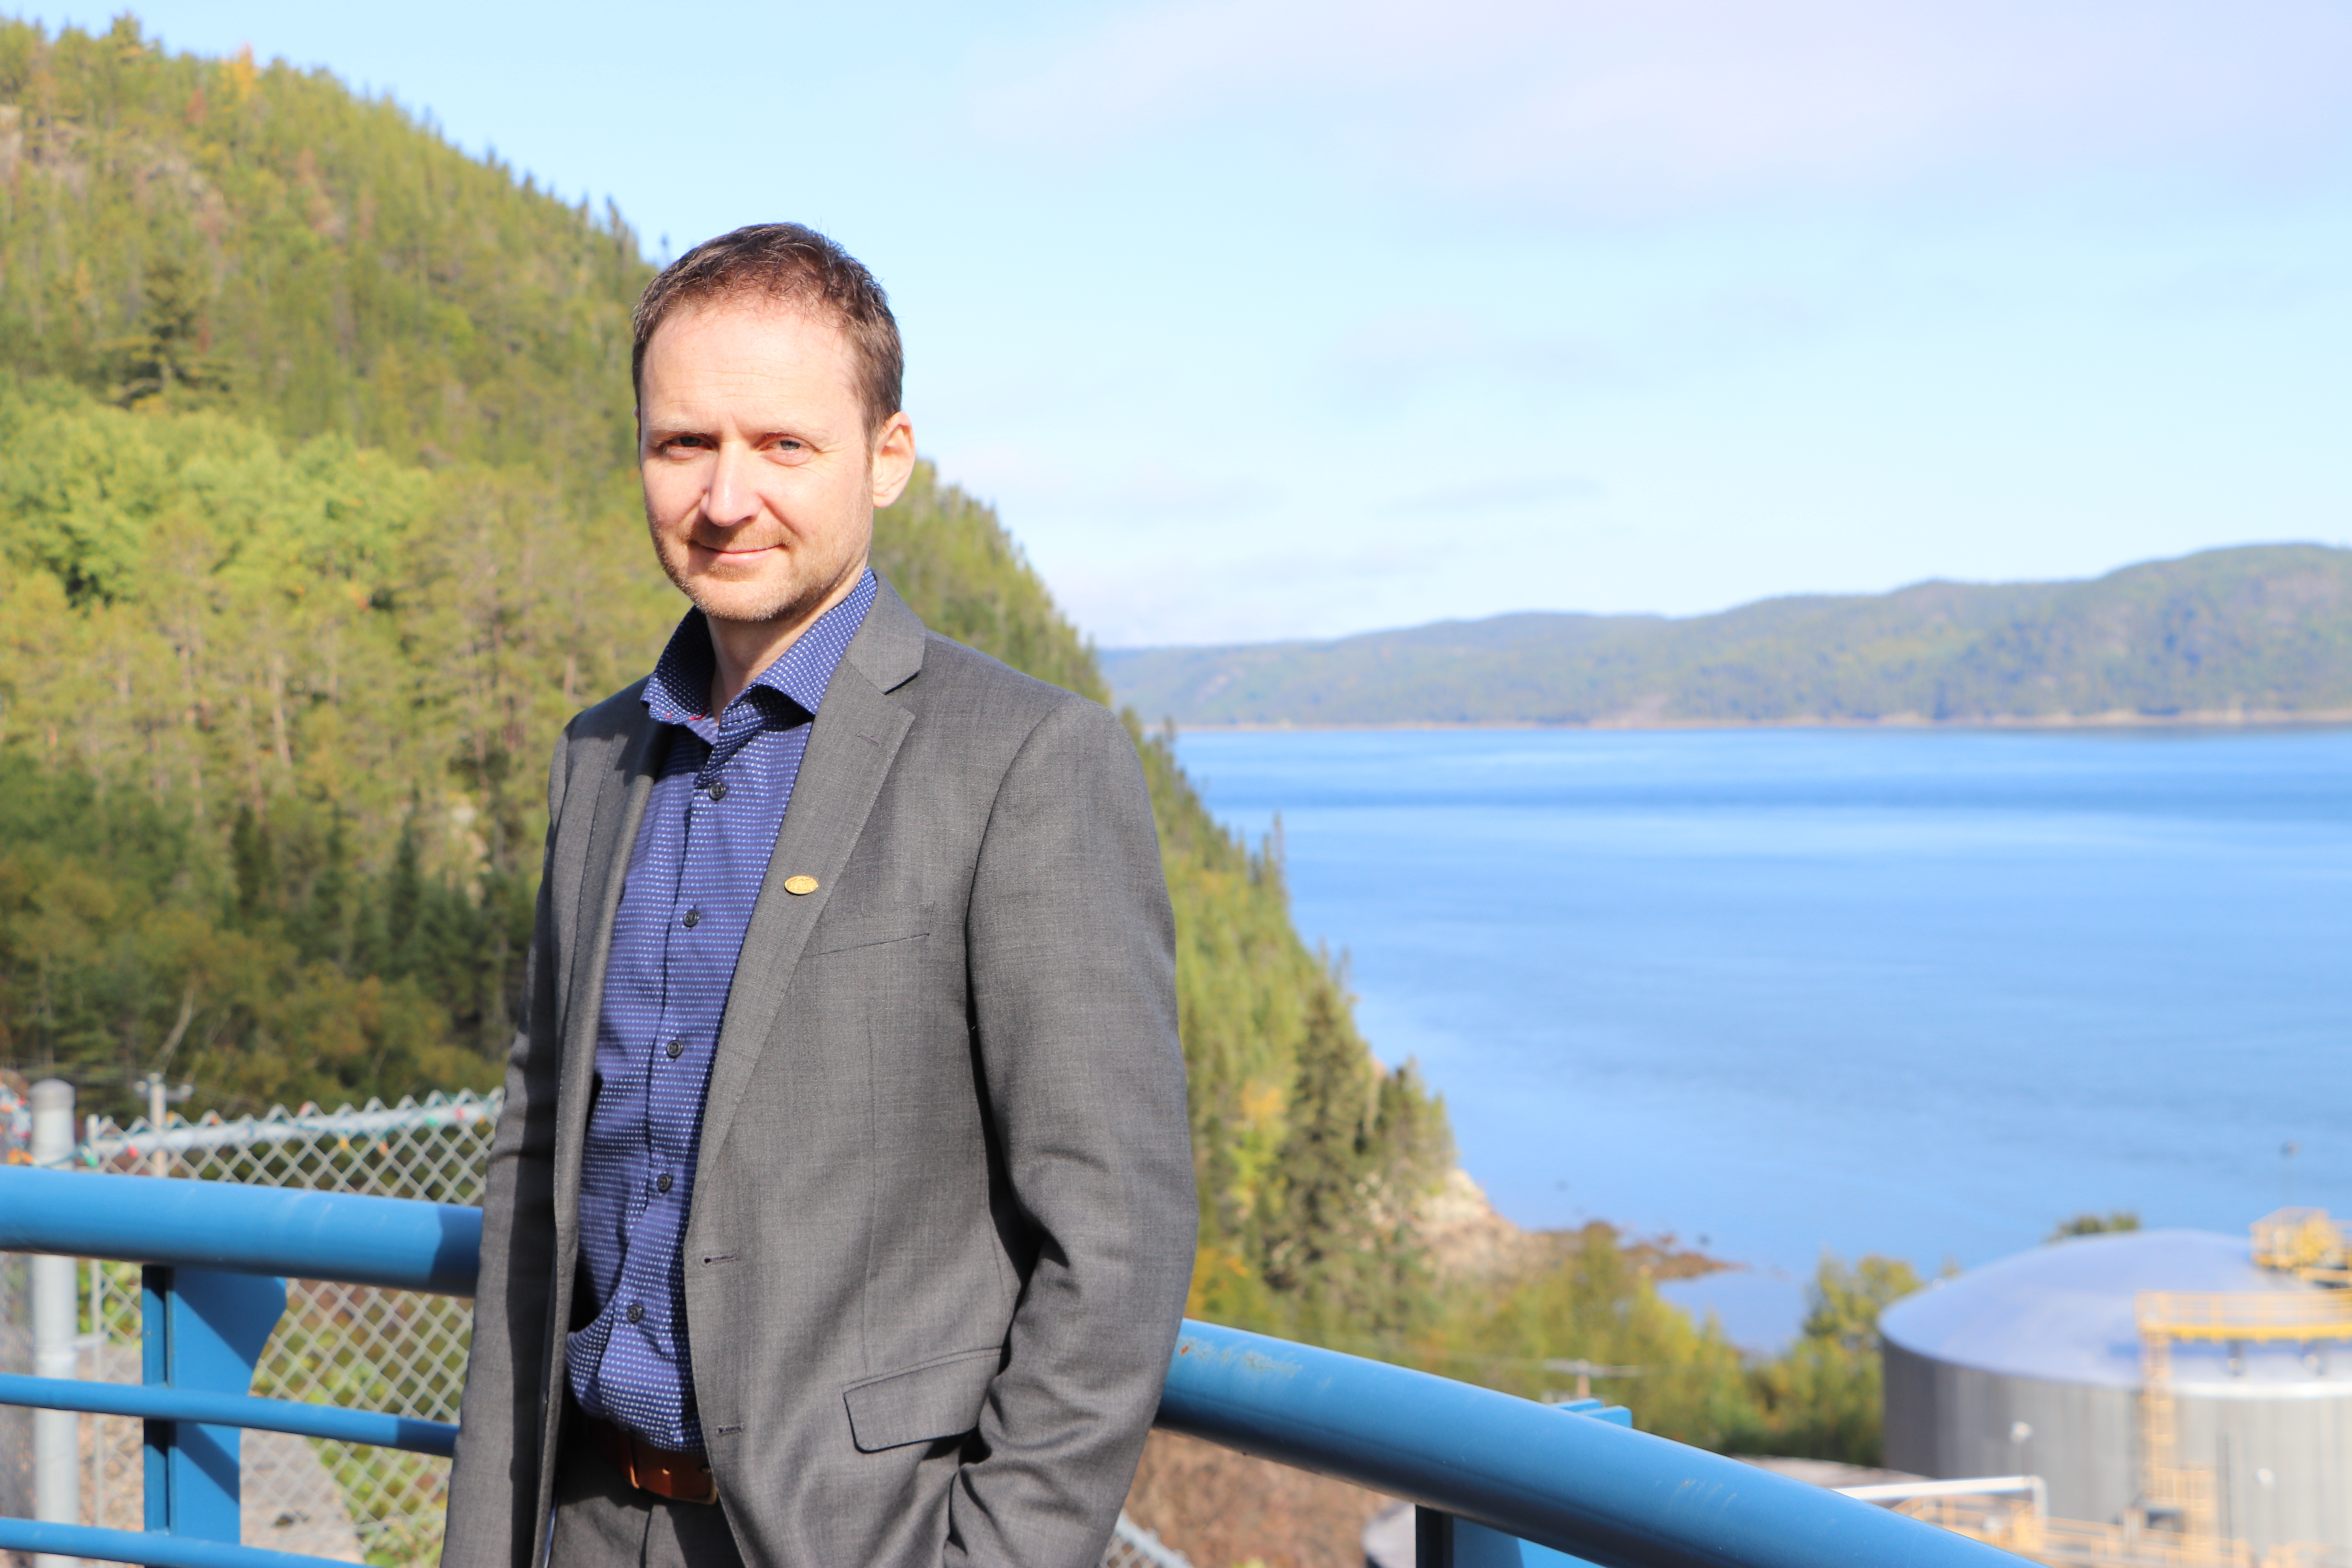 Carl Laberge, general manager of the Saguenay Port Authority, said the topography of the fjord makes it the ideal location from which to export LNG.